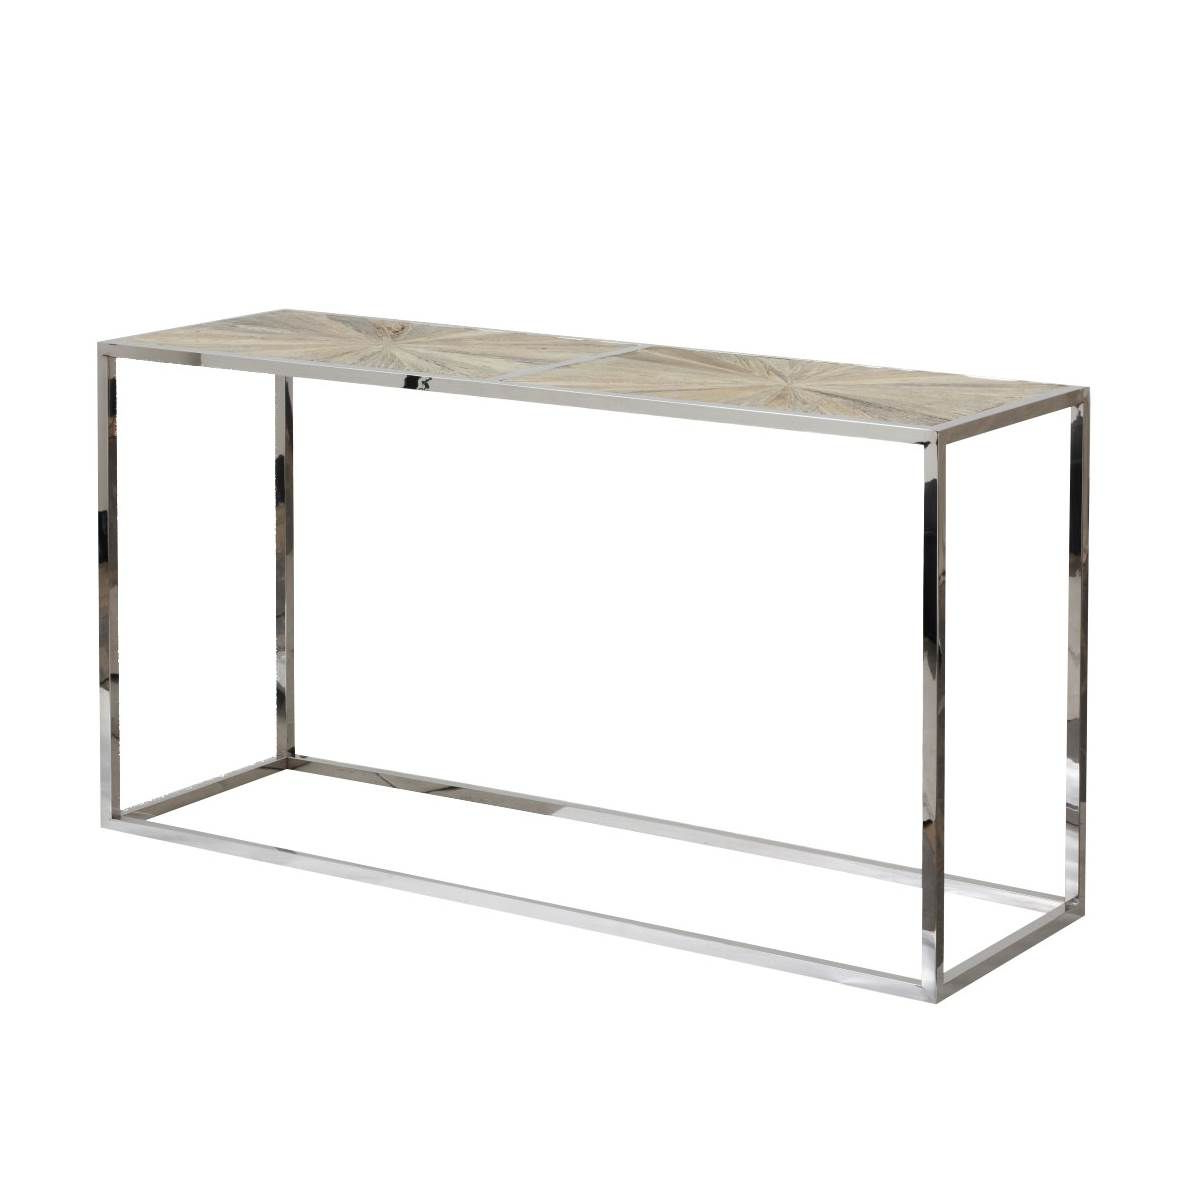 Parquet Console Table | Marshall | Pinterest Regarding Parsons White Marble Top & Stainless Steel Base 48x16 Console Tables (View 20 of 20)